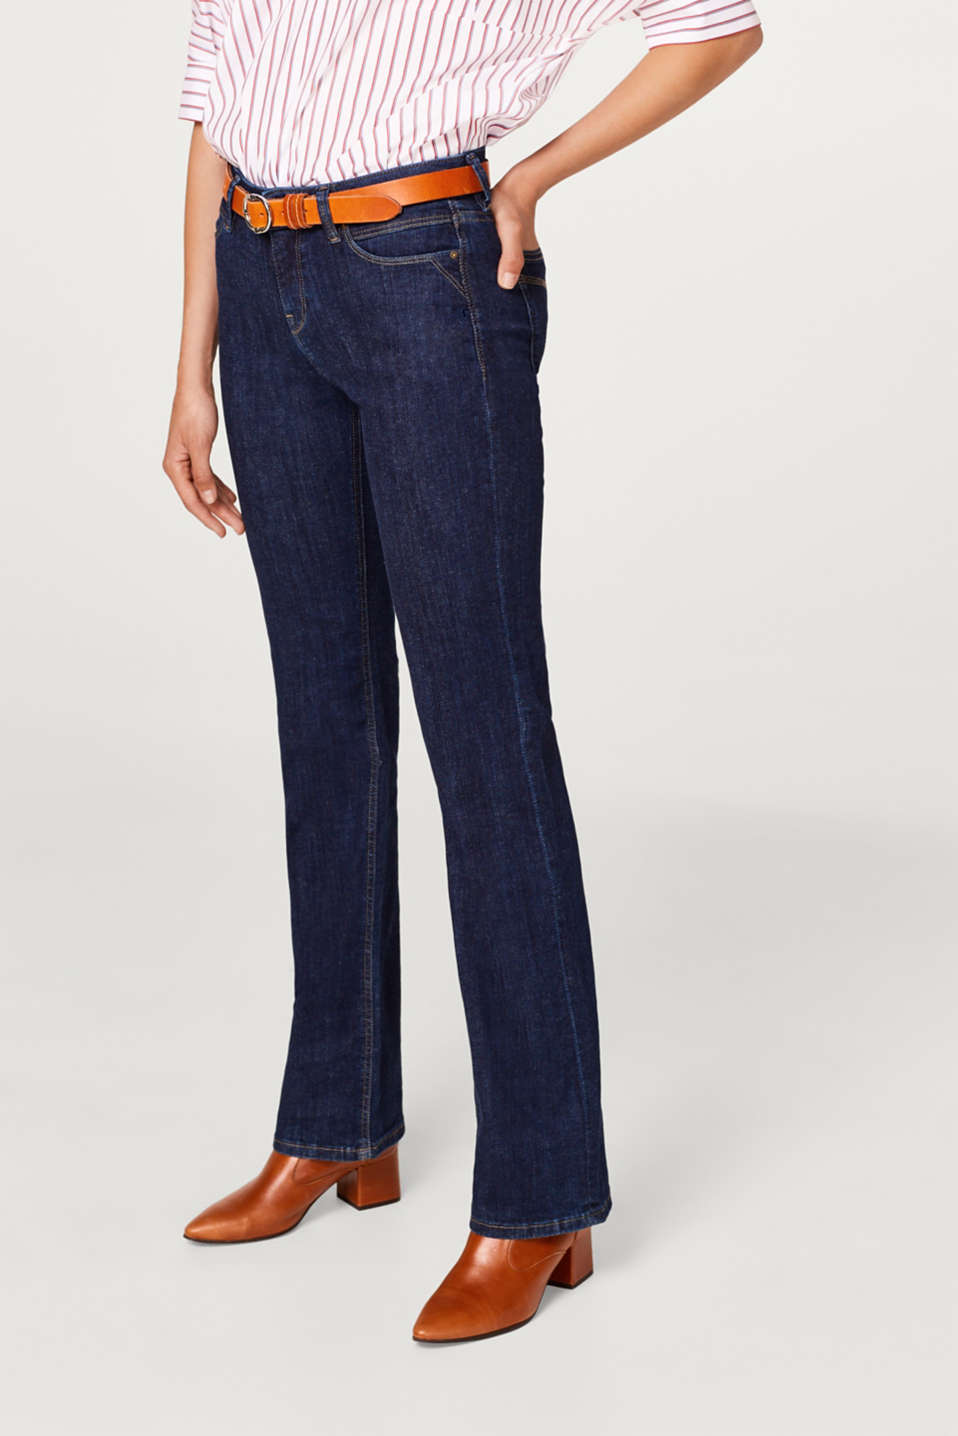 Esprit - Super stretch bootcut jeans